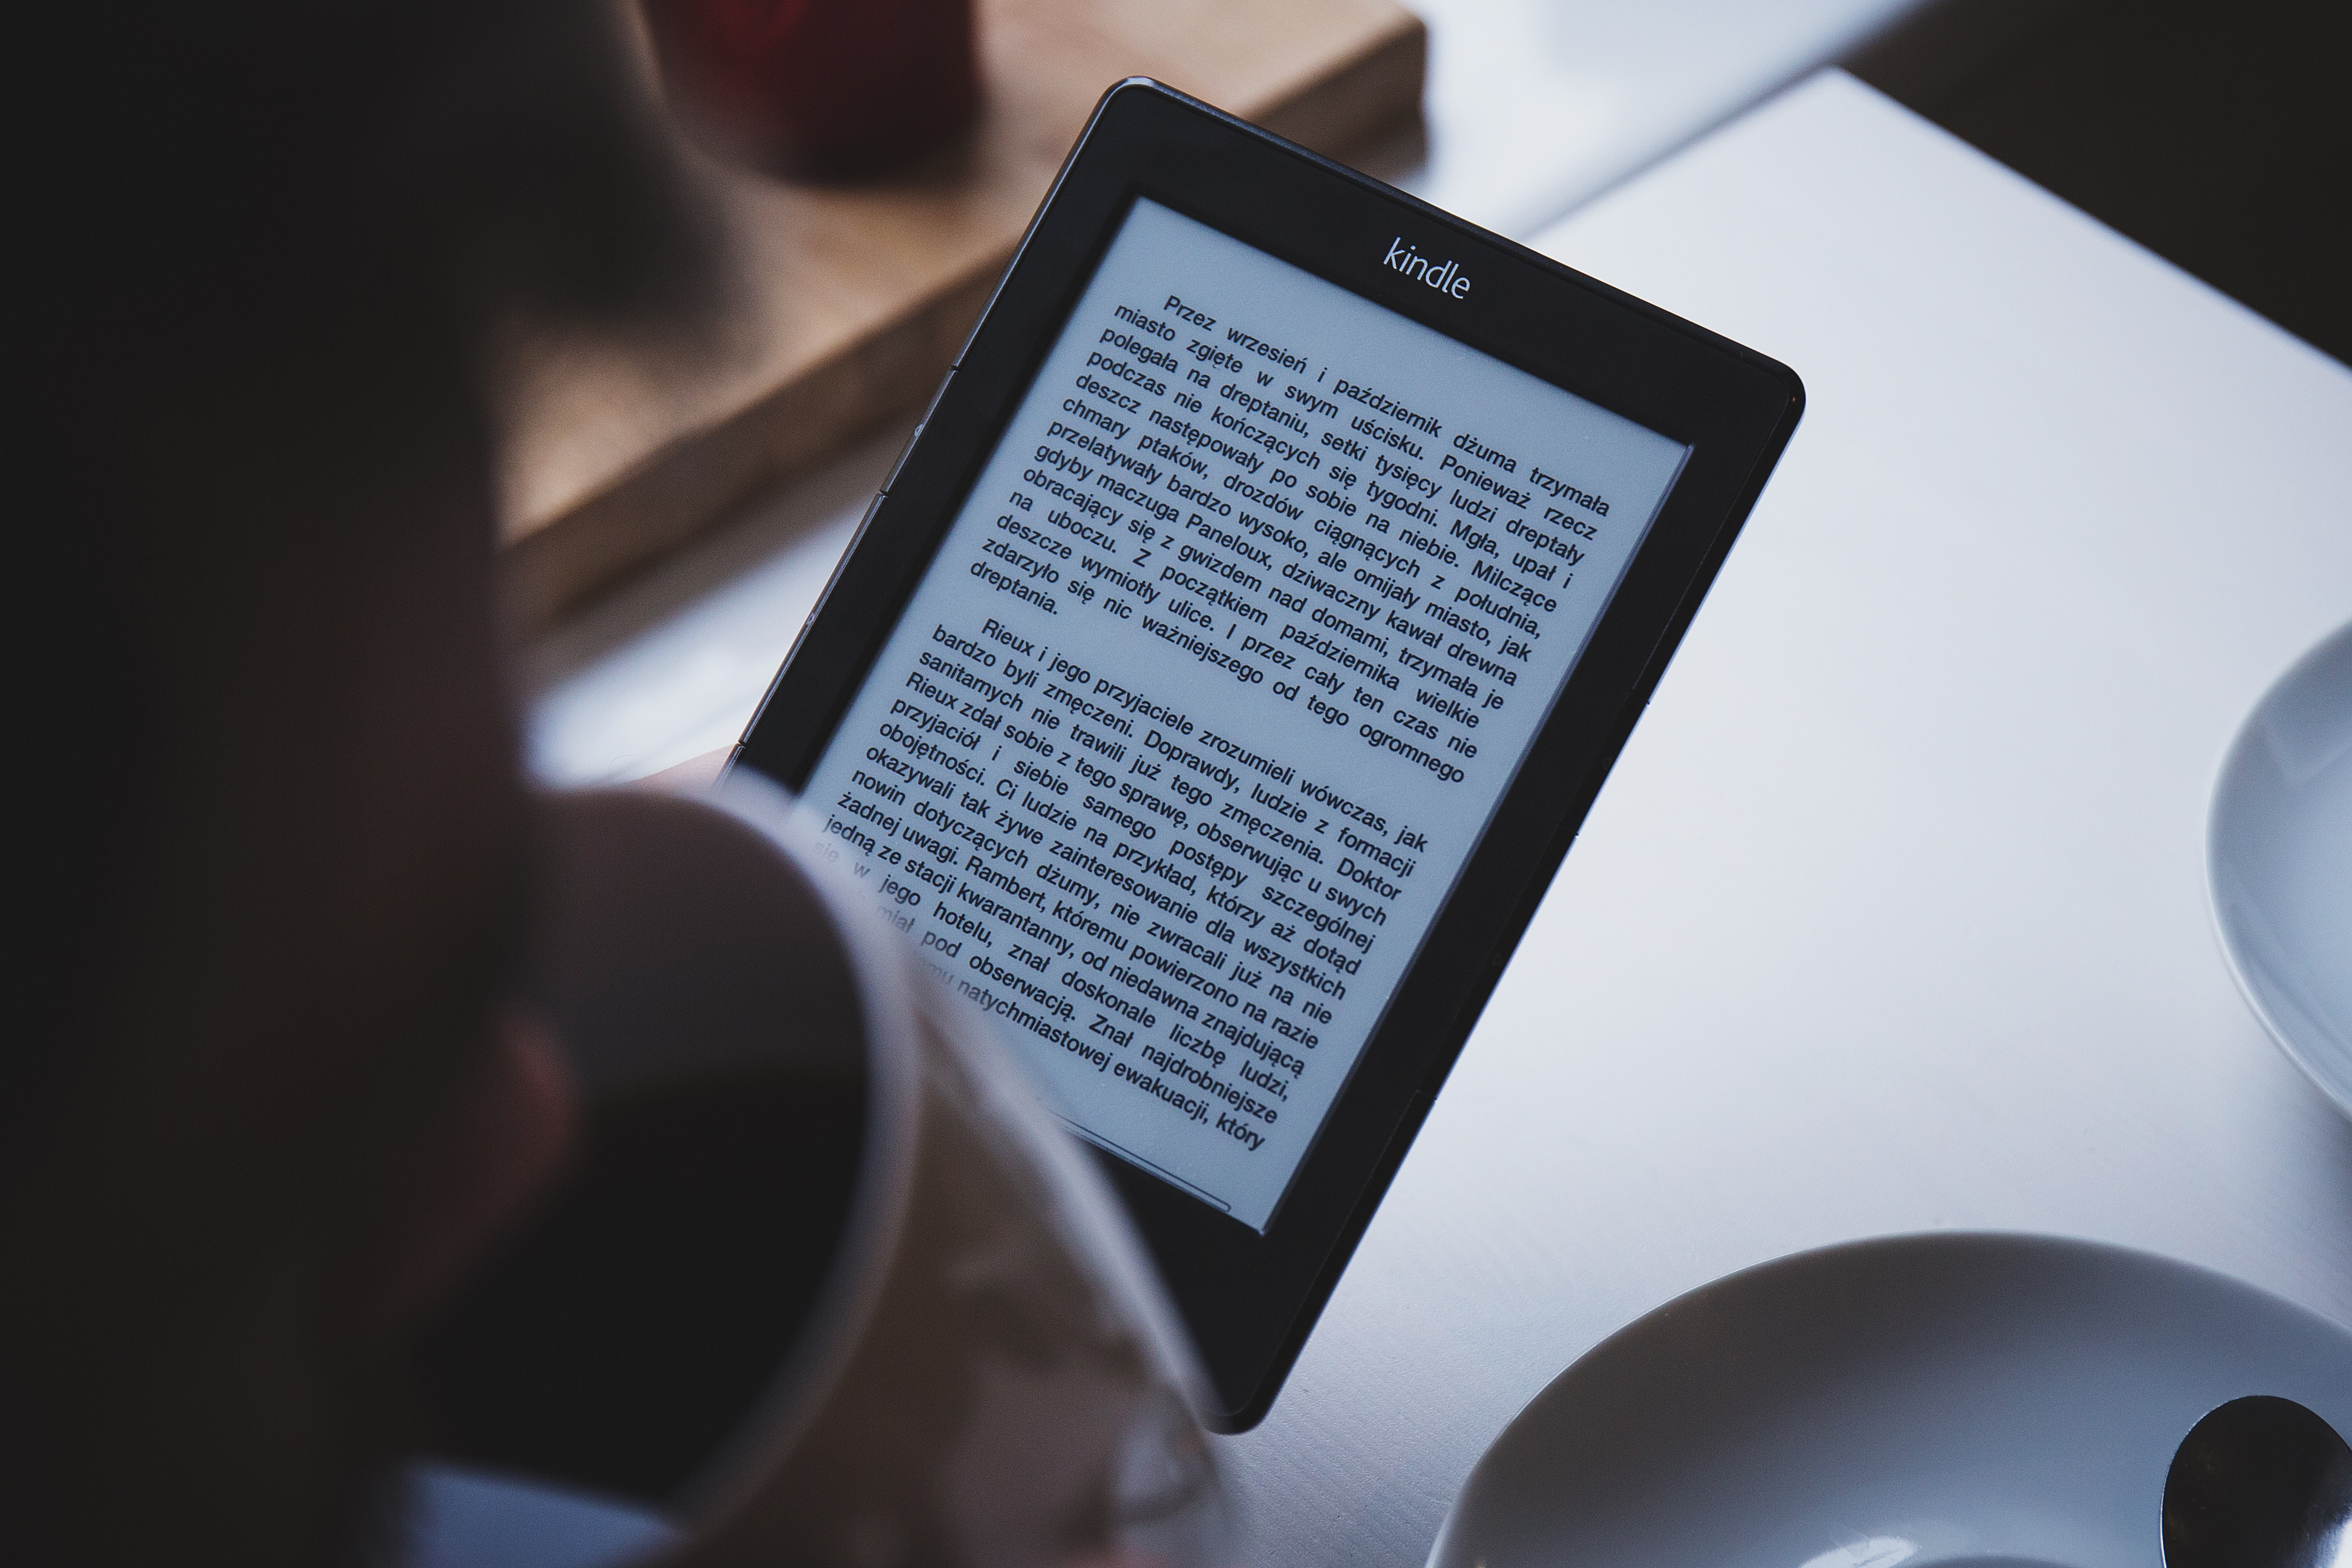 turned on black Amazon Kindle e-book reader